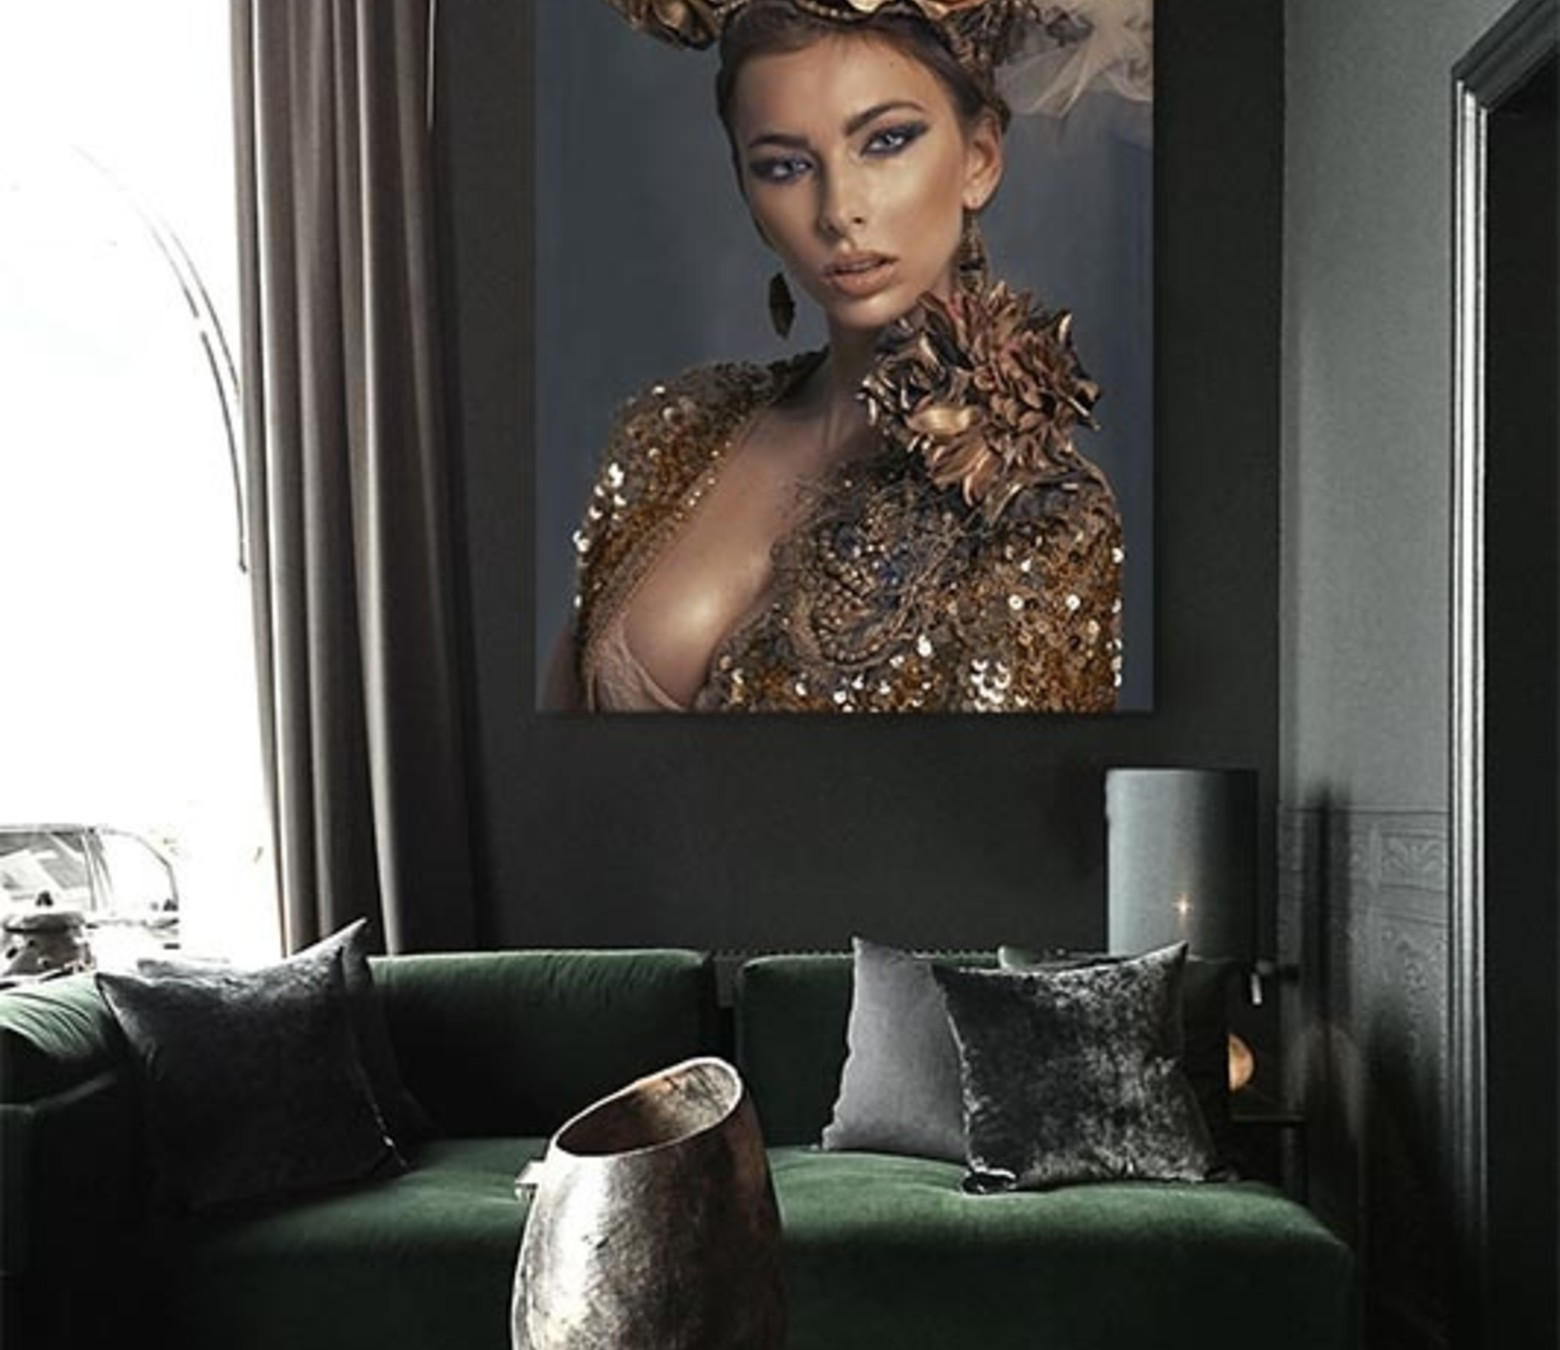 Luxury Lady foto-art plexiglas